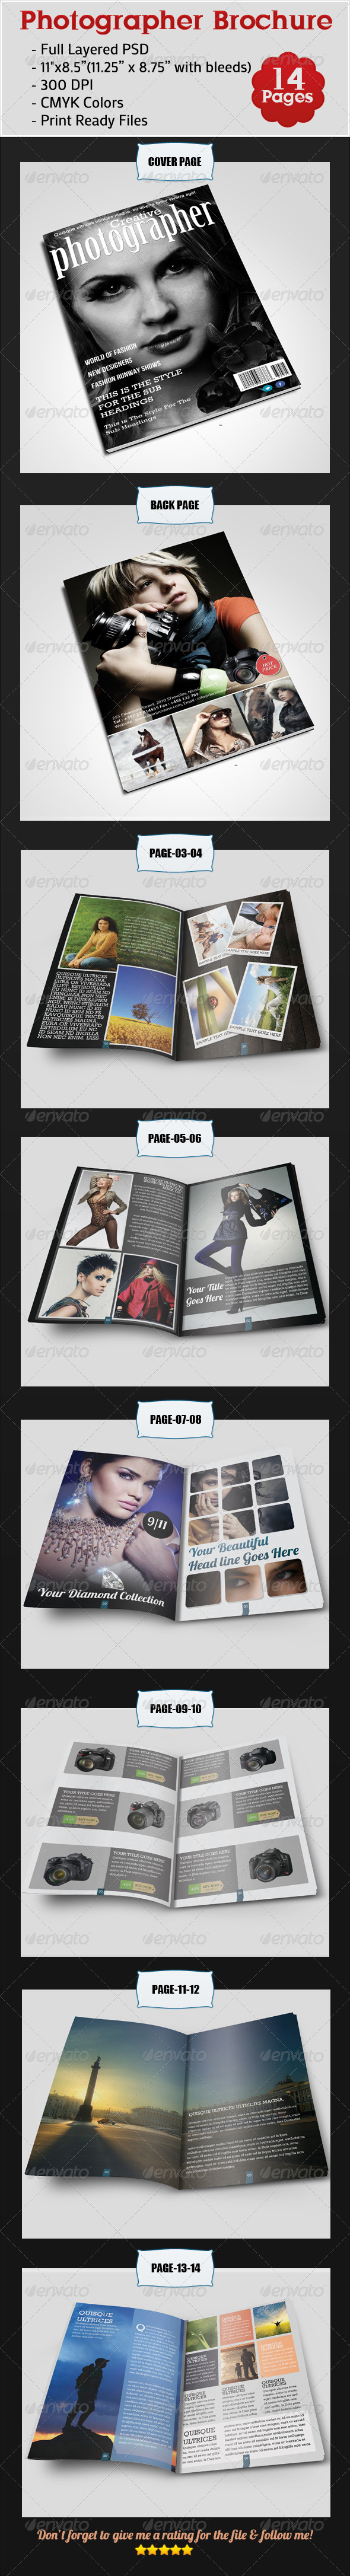 Photographer Brochure - Corporate Brochures